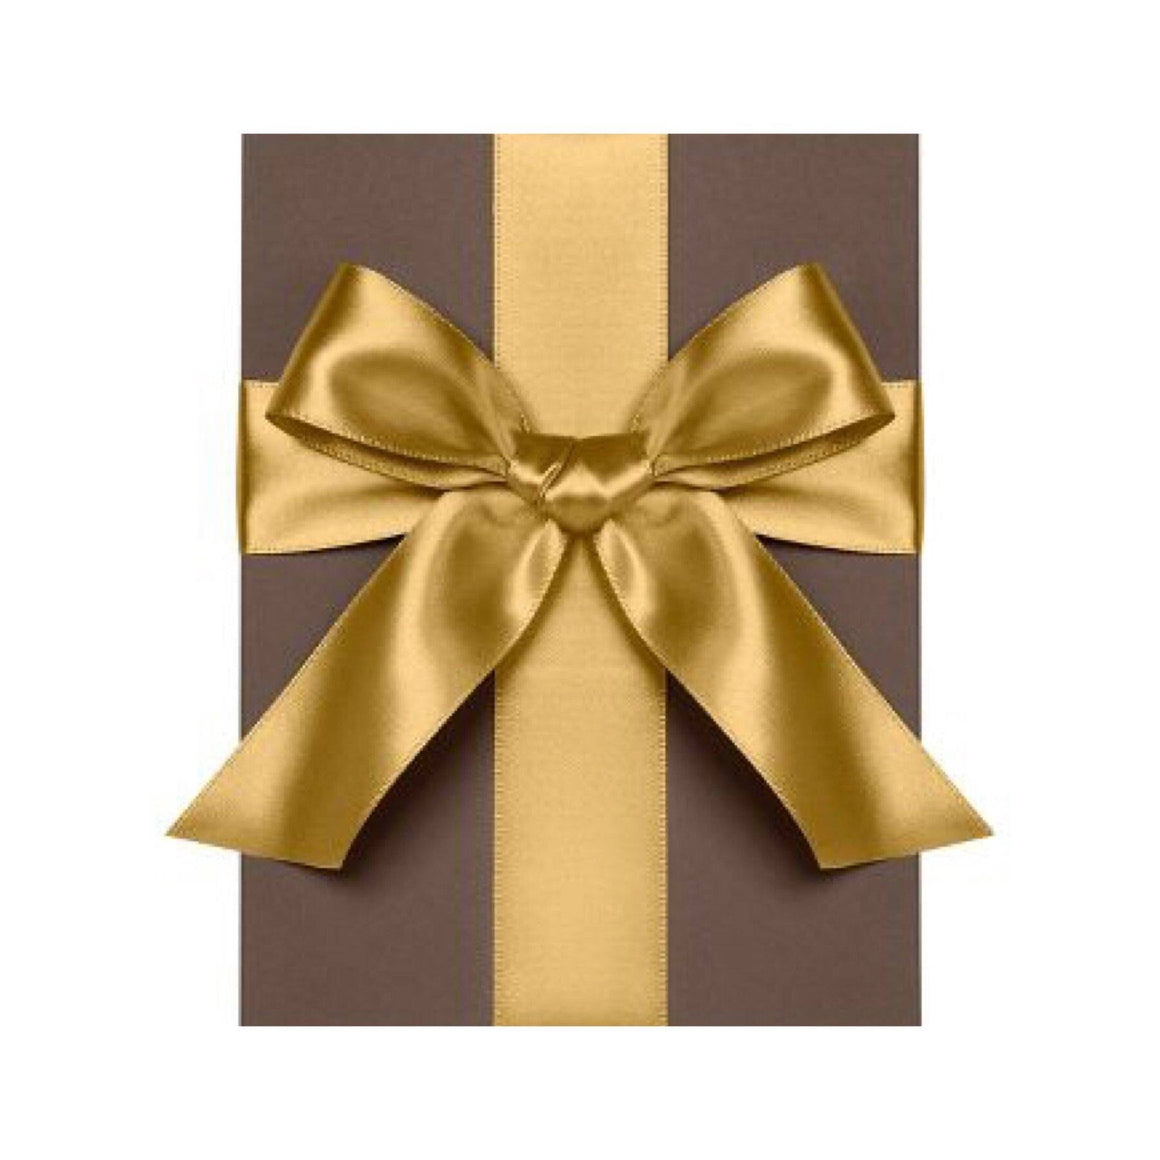 "GIFT GIVING - RIBBON 1/4"" VINTAGE GOLD, RIBBON, WASTE NOT PAPER - Bon + Co. Party Studio"